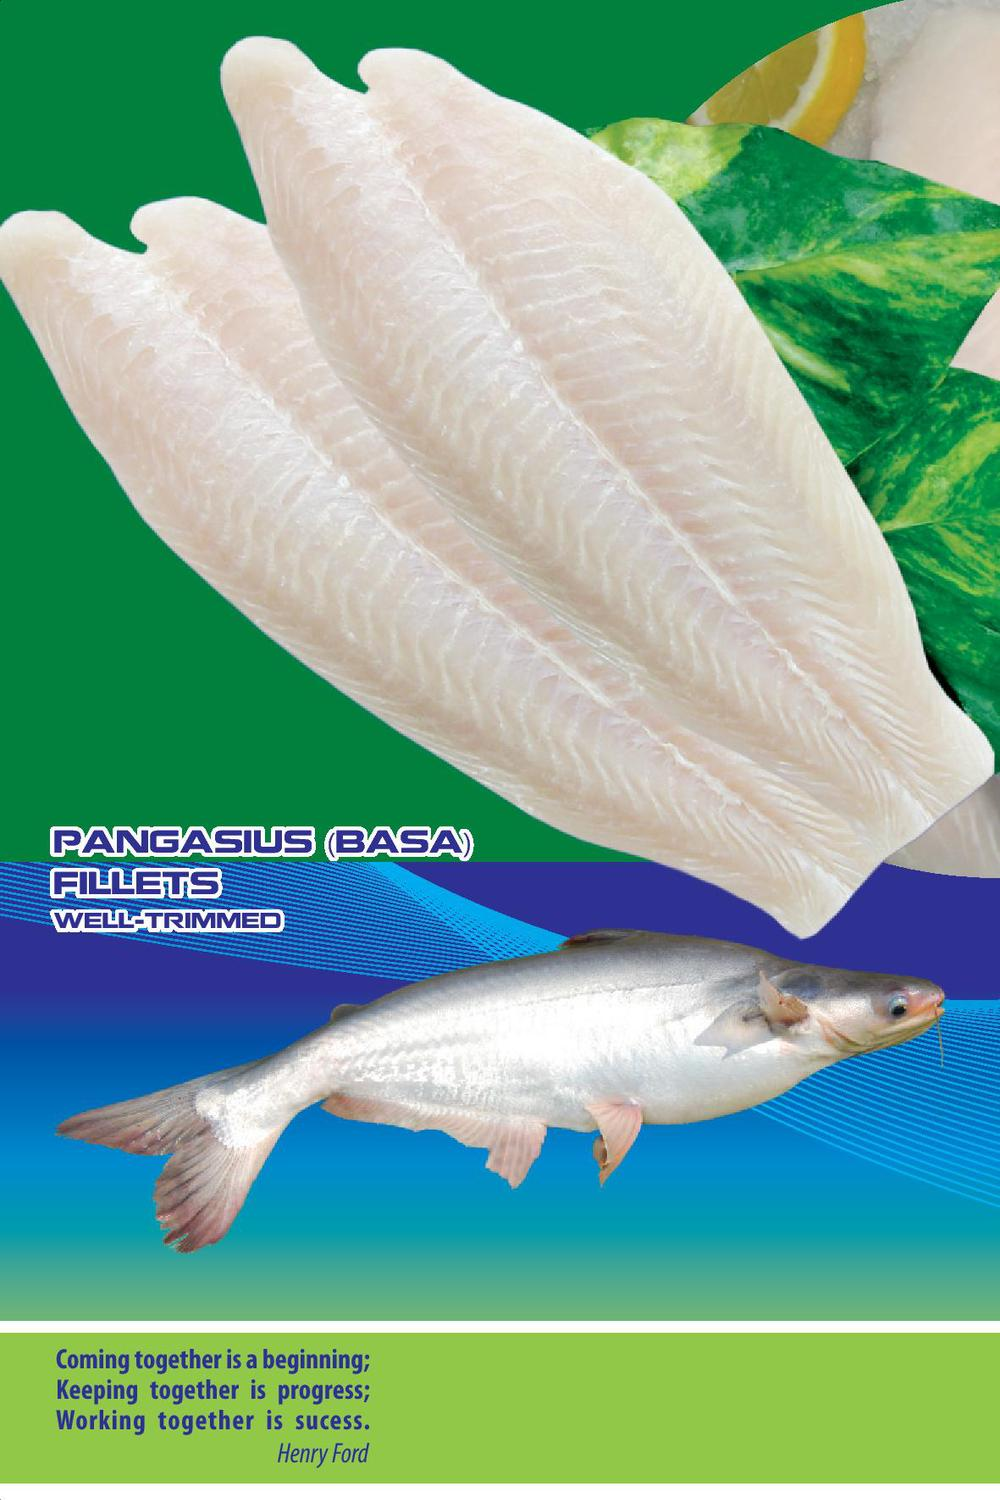 Frozen pangasius fillets buy frozen fish fillets for Picture of dory fish